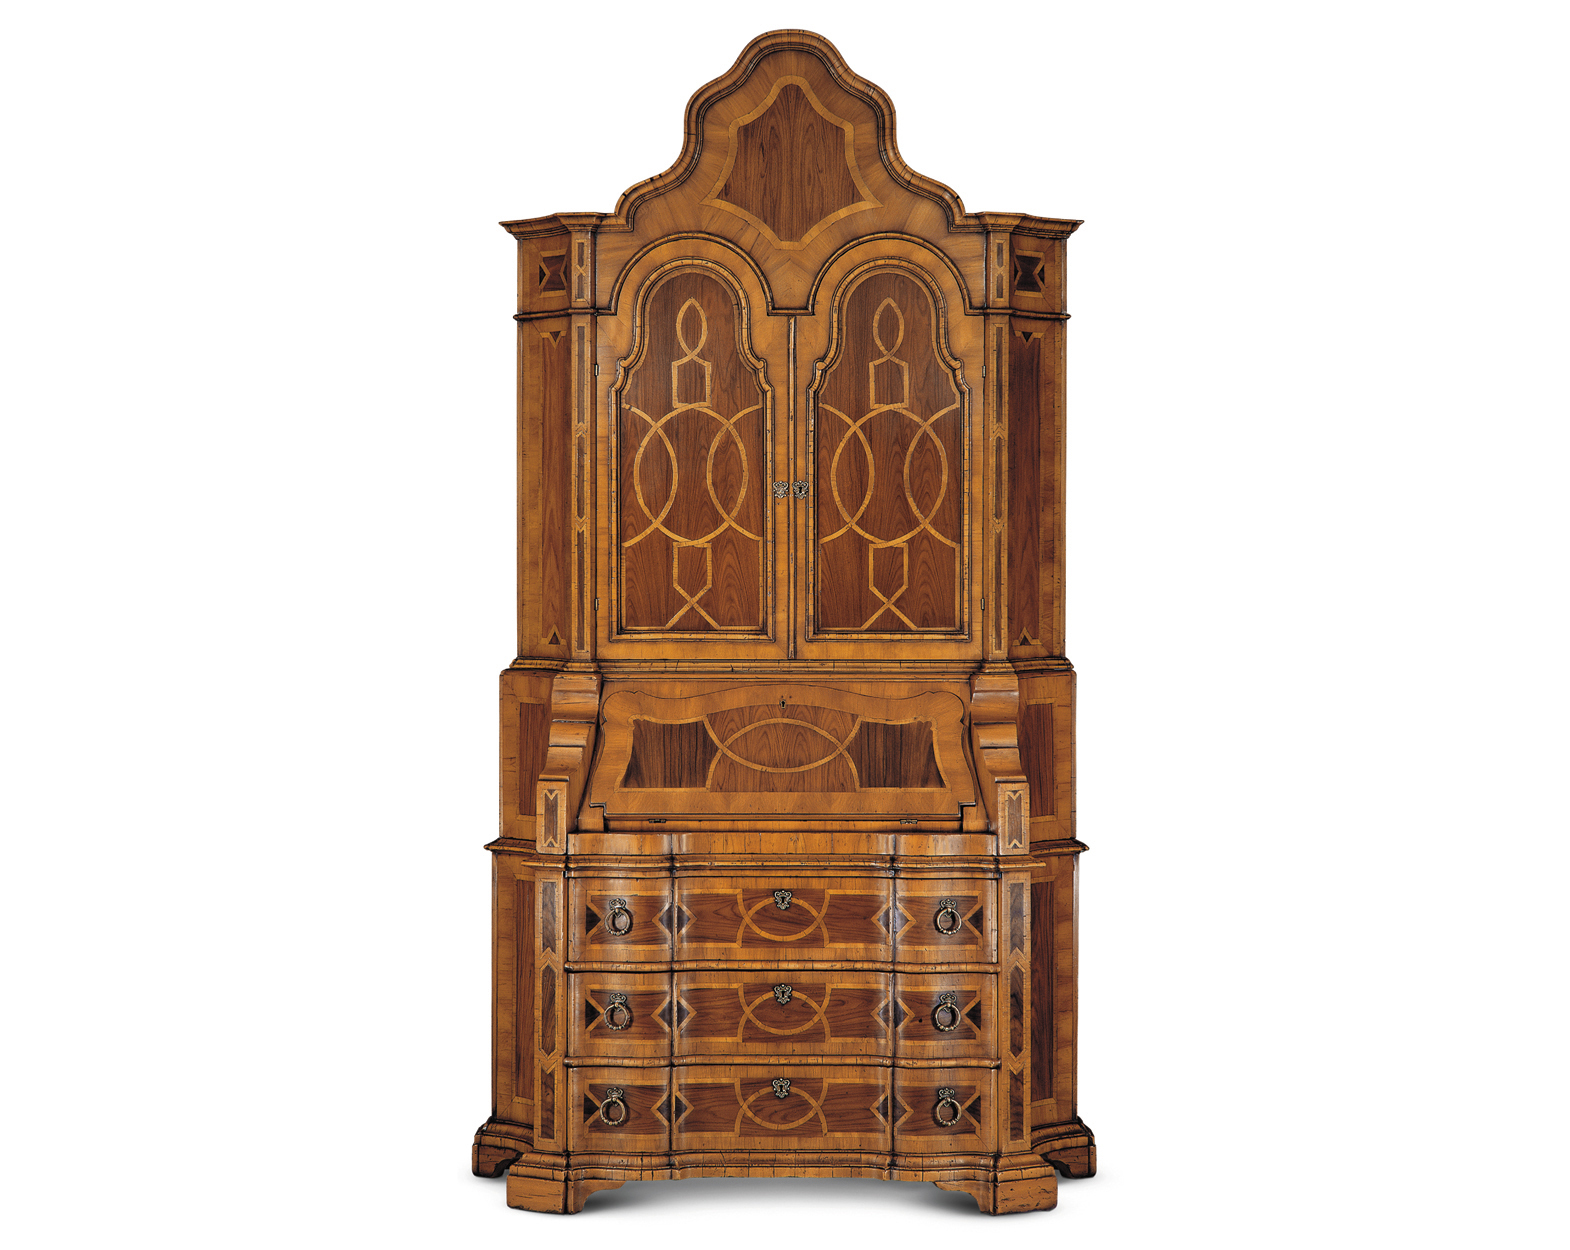 VENEERED ITALIAN SECRETAIRE